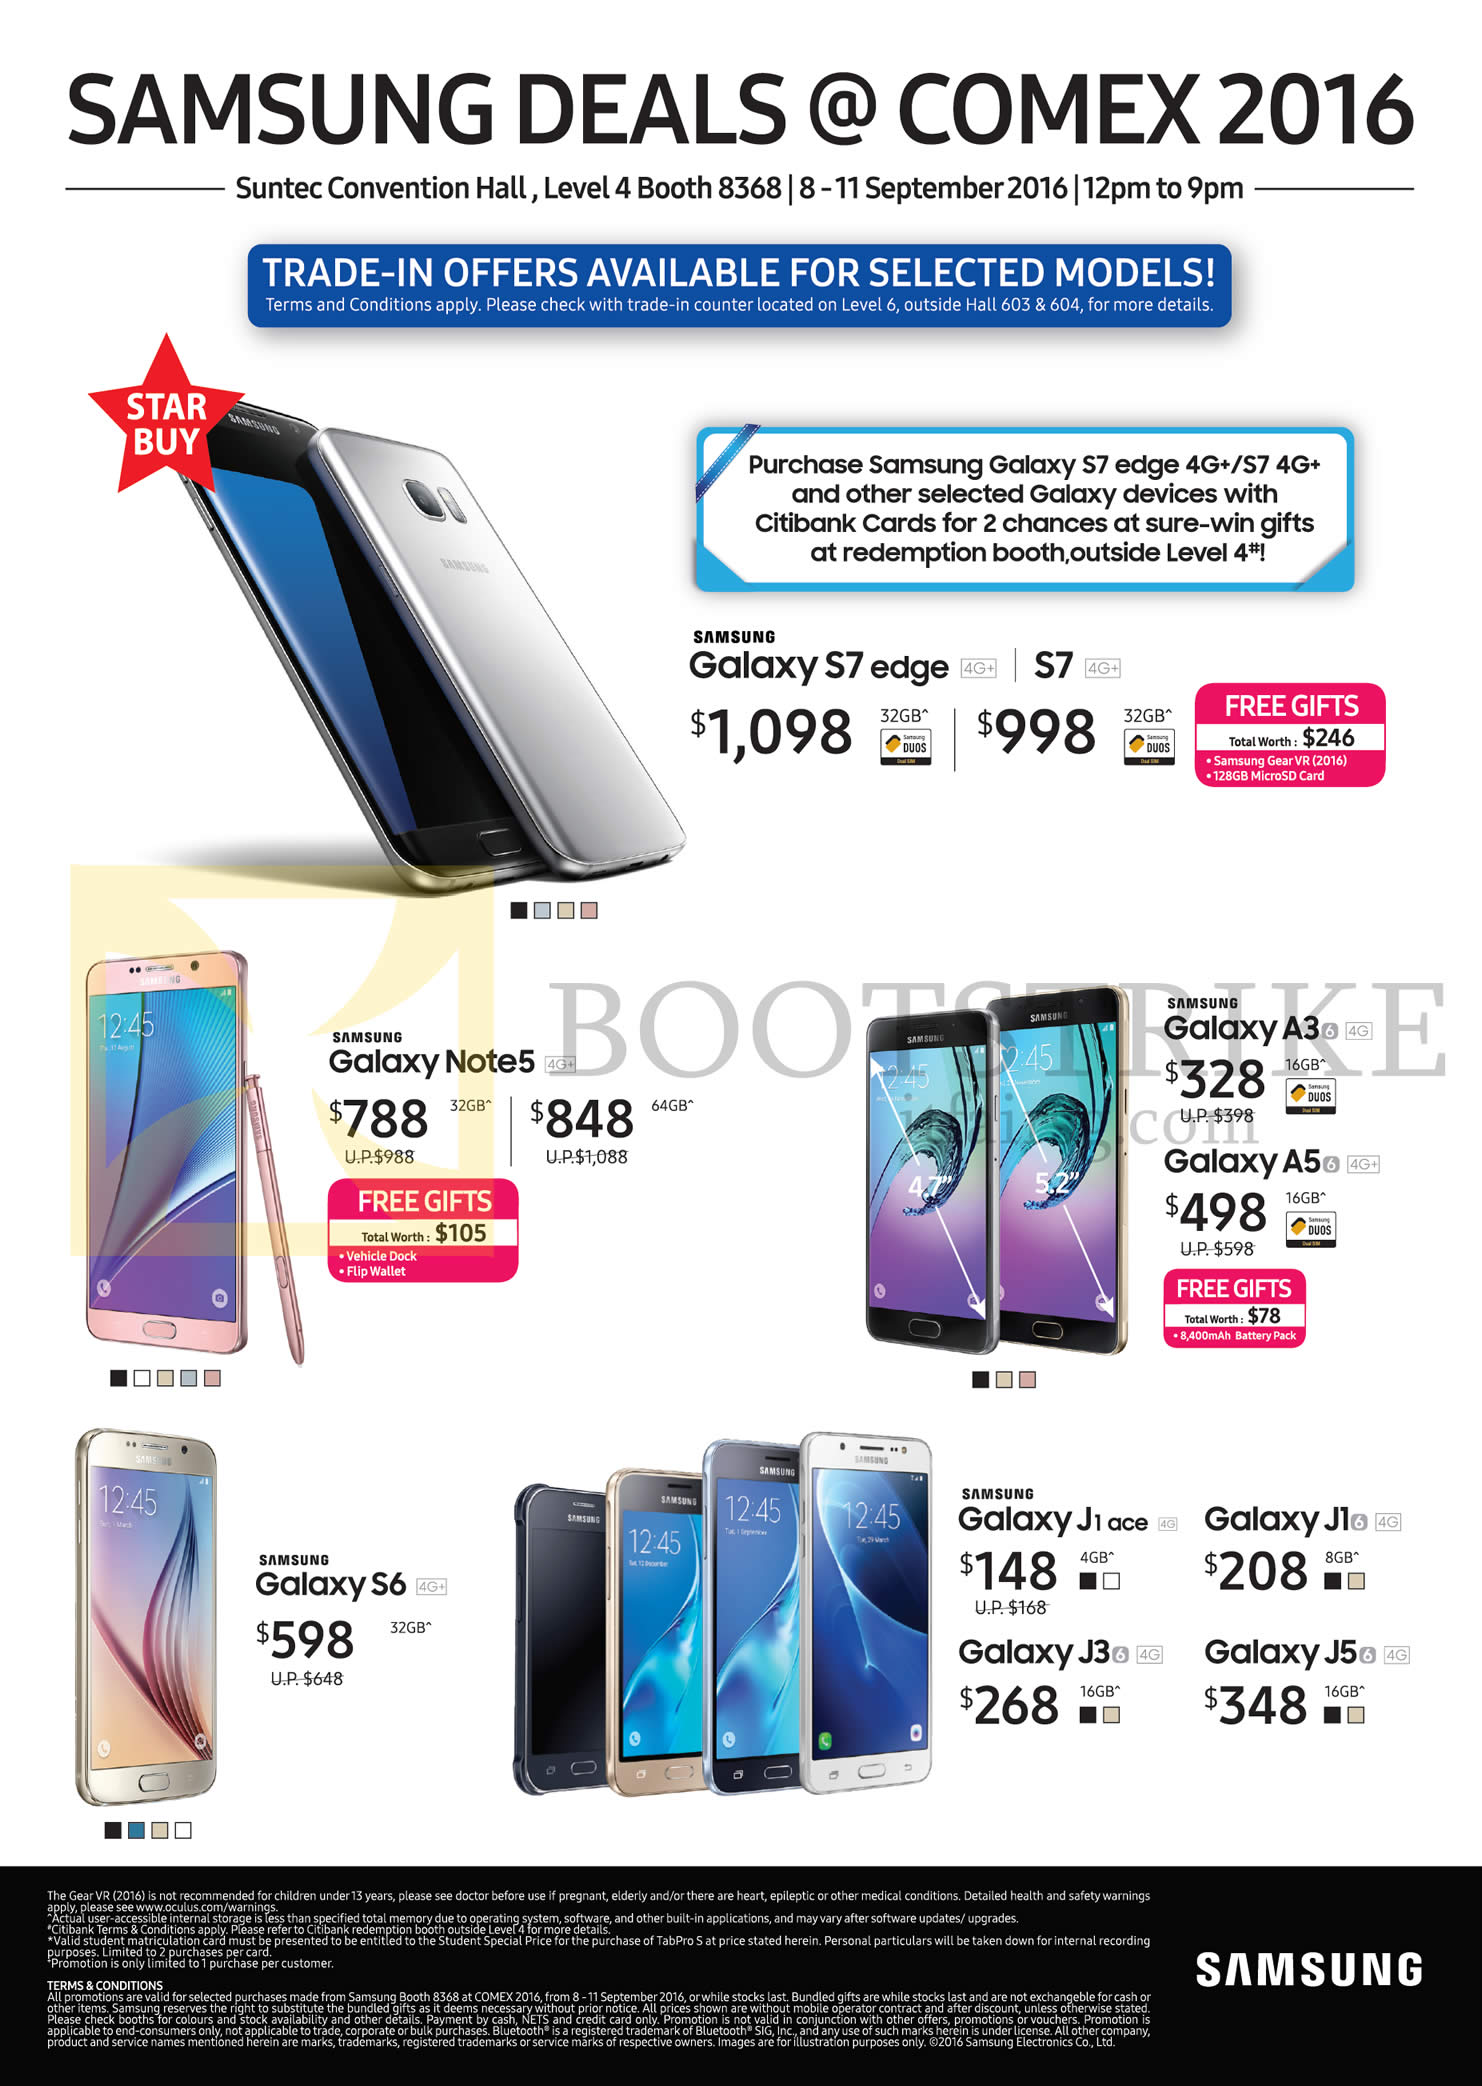 COMEX 2016 price list image brochure of Samsung Mobile Phones Galaxy S7, S7 Edge, Note 5, A3, S6, J1 Ace, J1, J3, J5